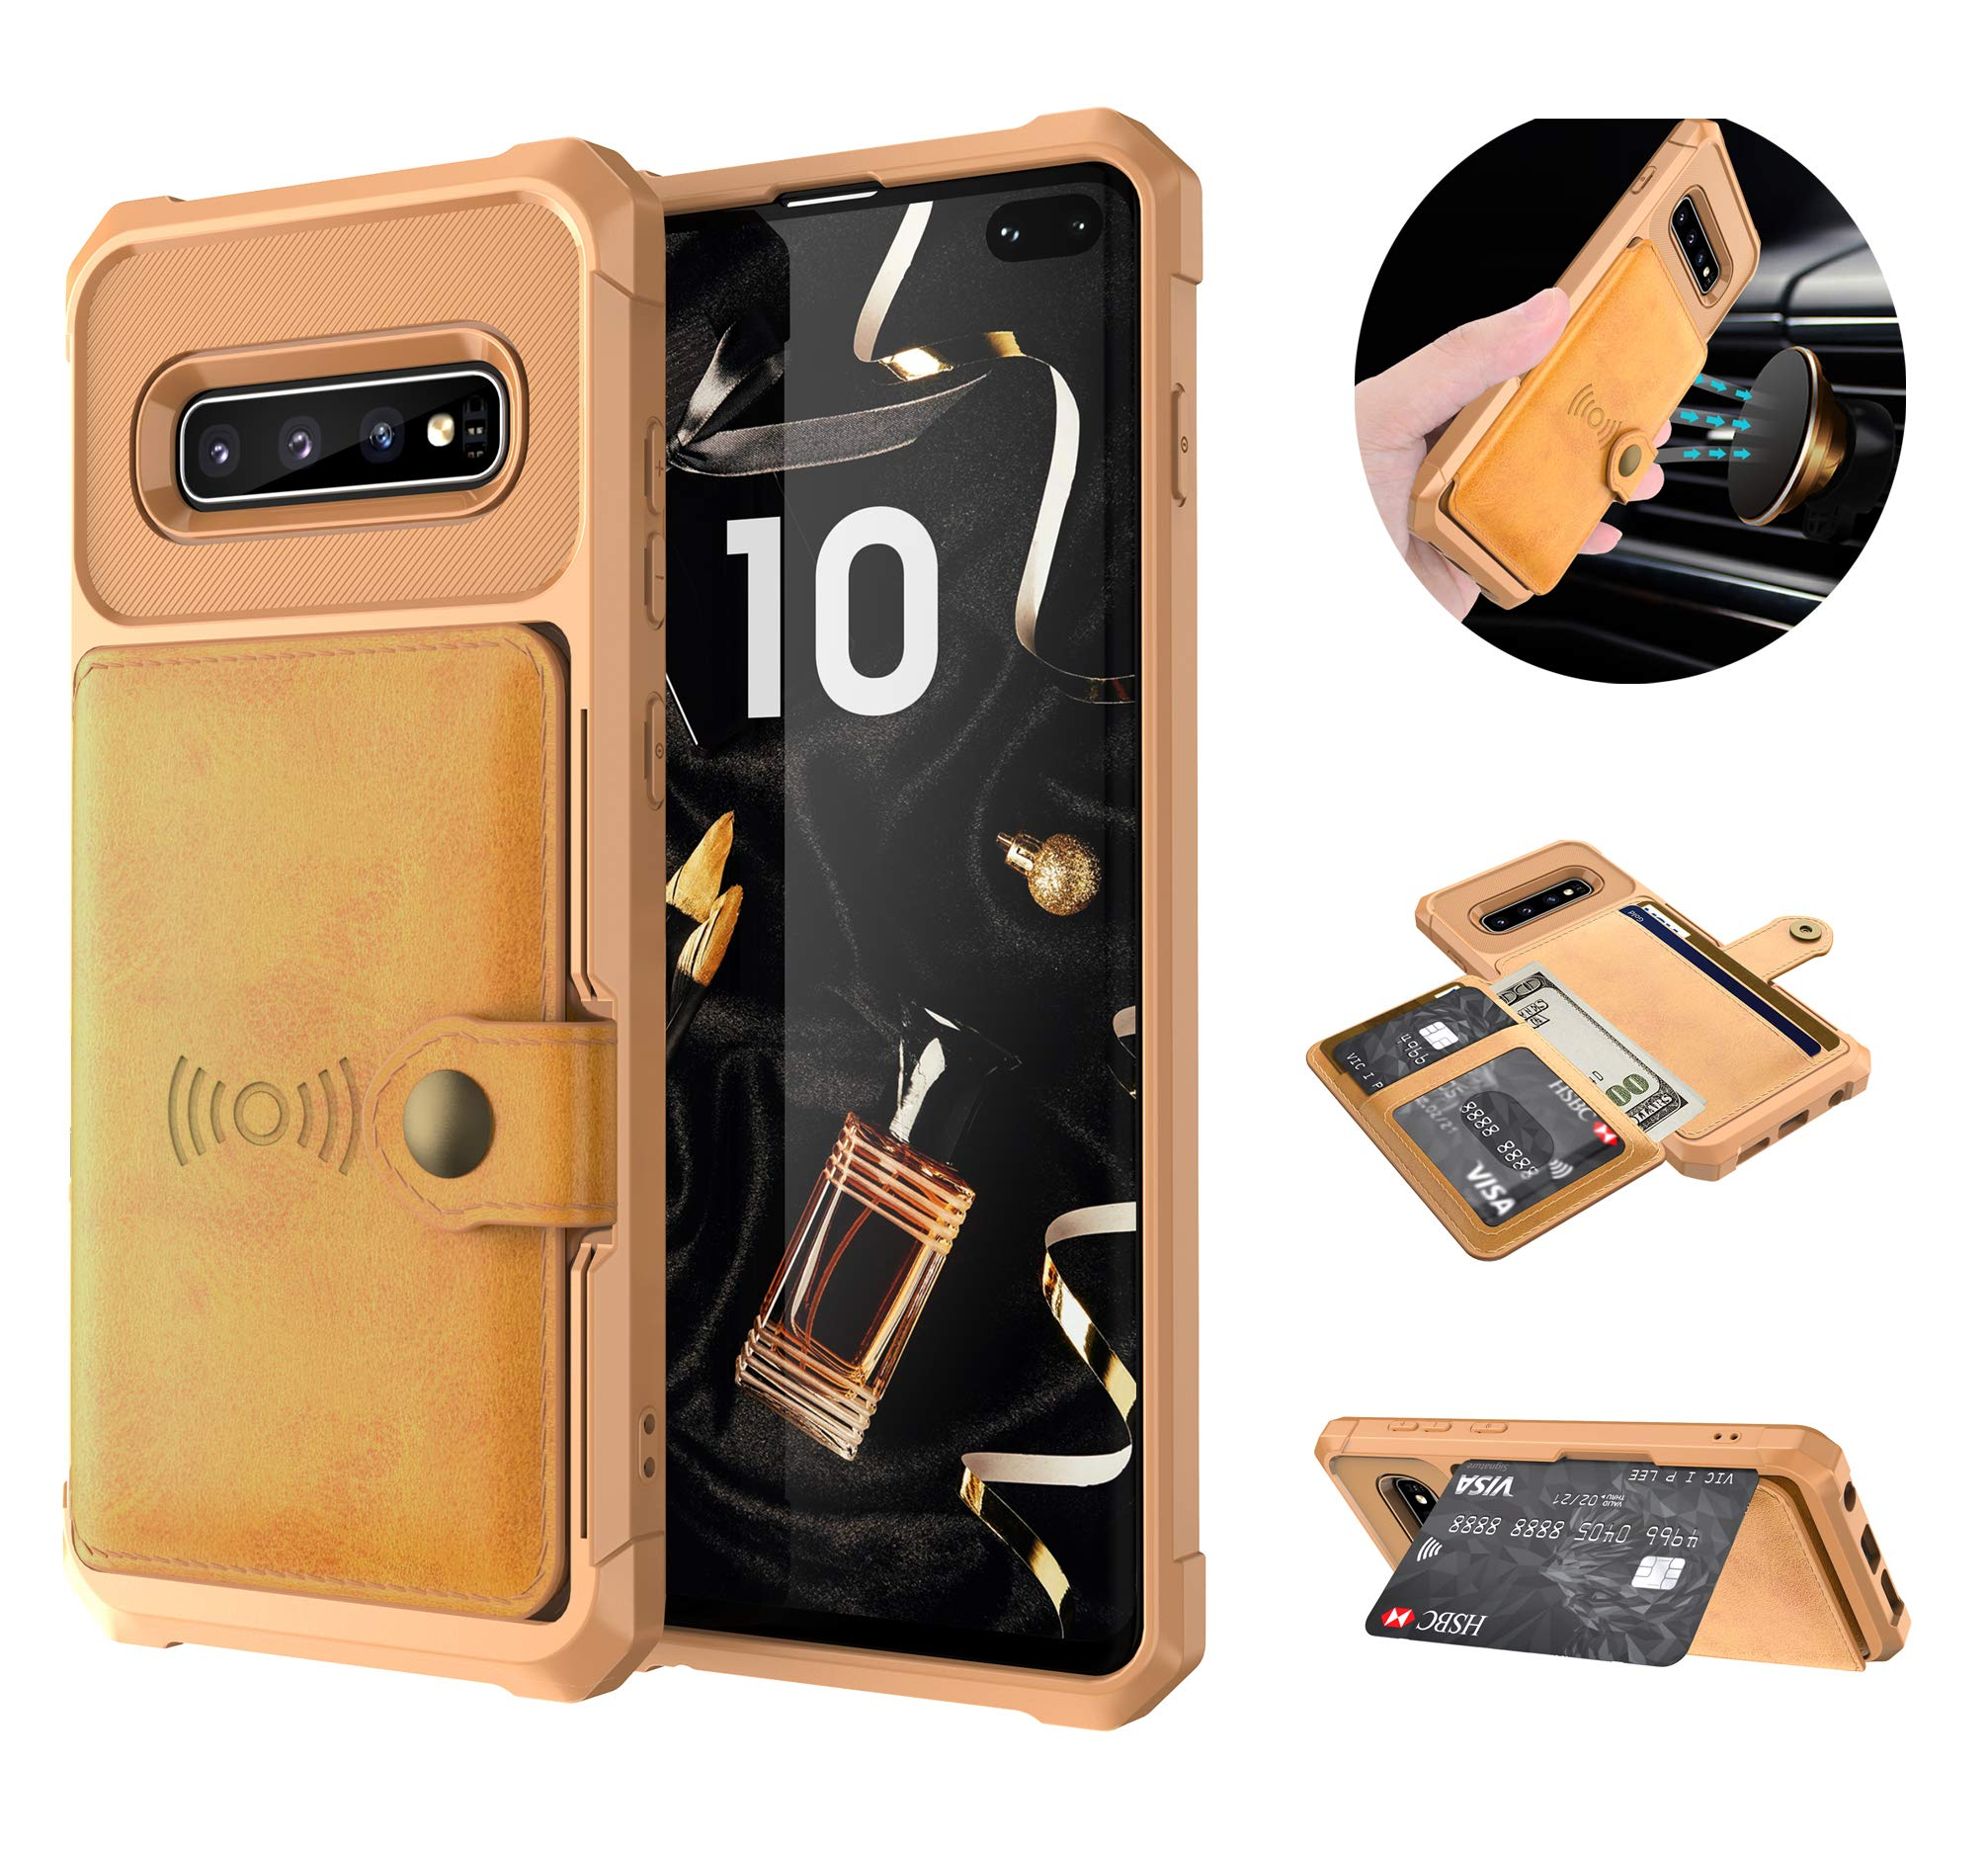 Tznzxm Galaxy S10+ Plus Wireless Charging Wallet Case with Credit Card Holder Kickstand Rubber [Work with Magnetic Car Mount] Durable Flip Shockproof Protective Cover for Galaxy S10 Plus Brown